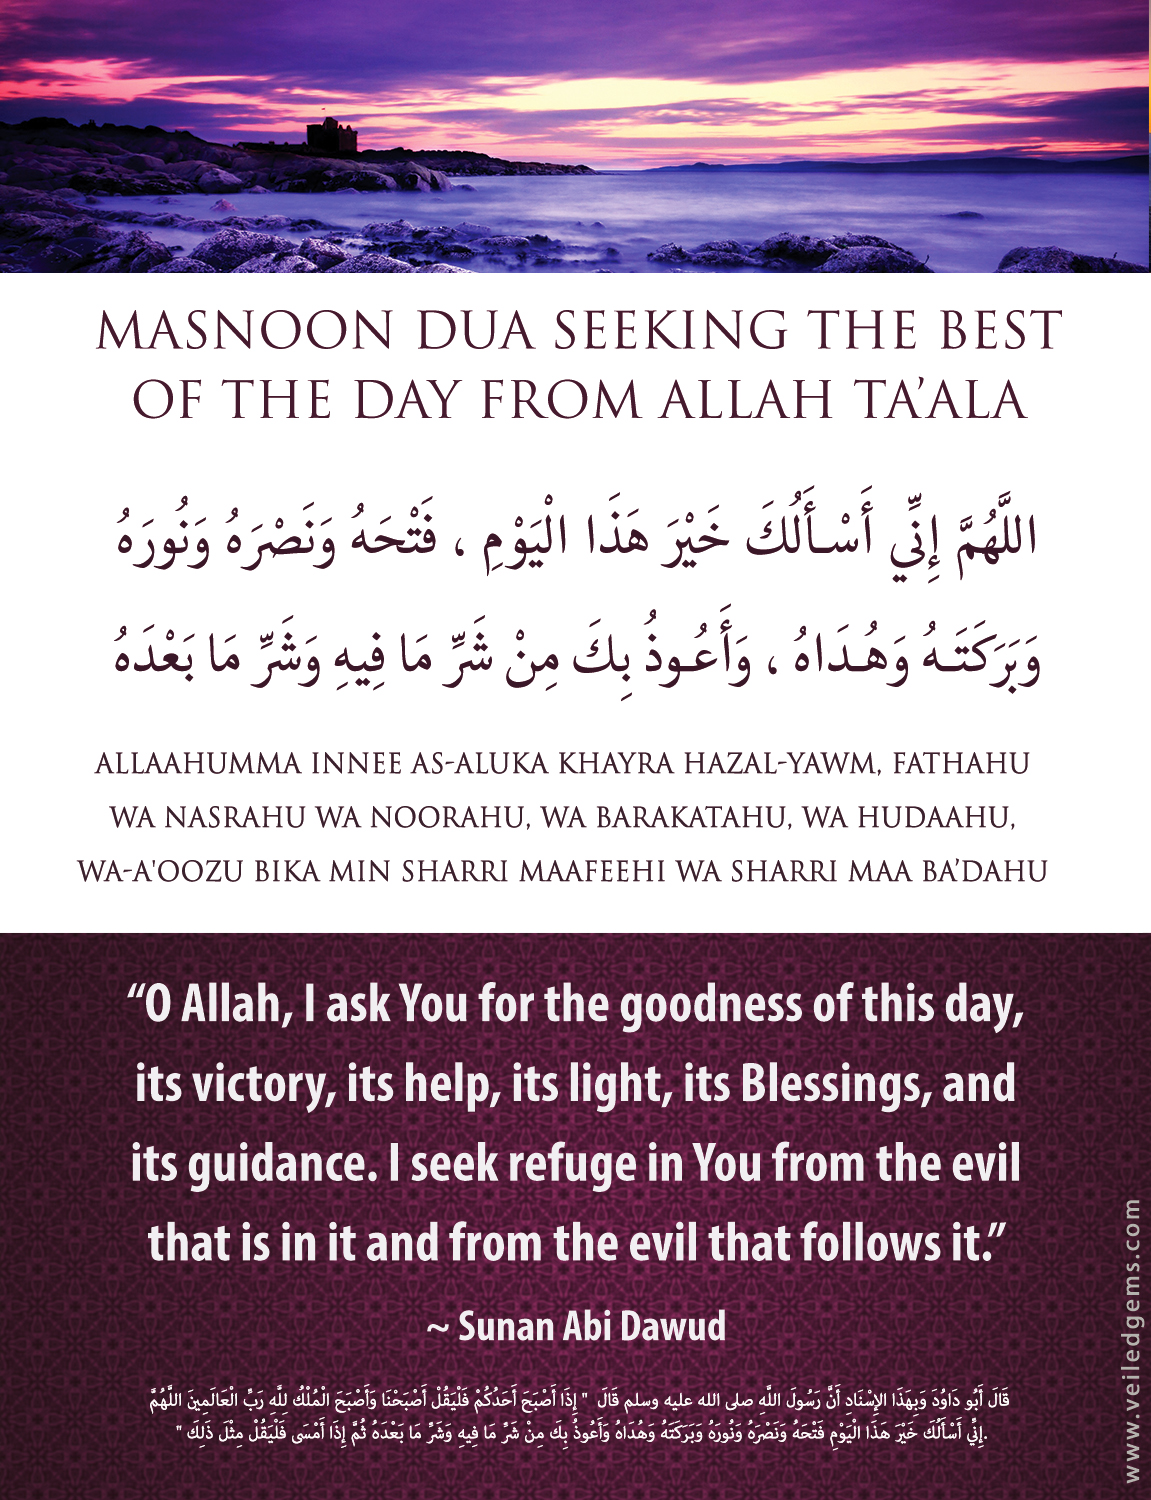 islaah.co.za.Dua.Seeking.Best.of.Day.from.Allah